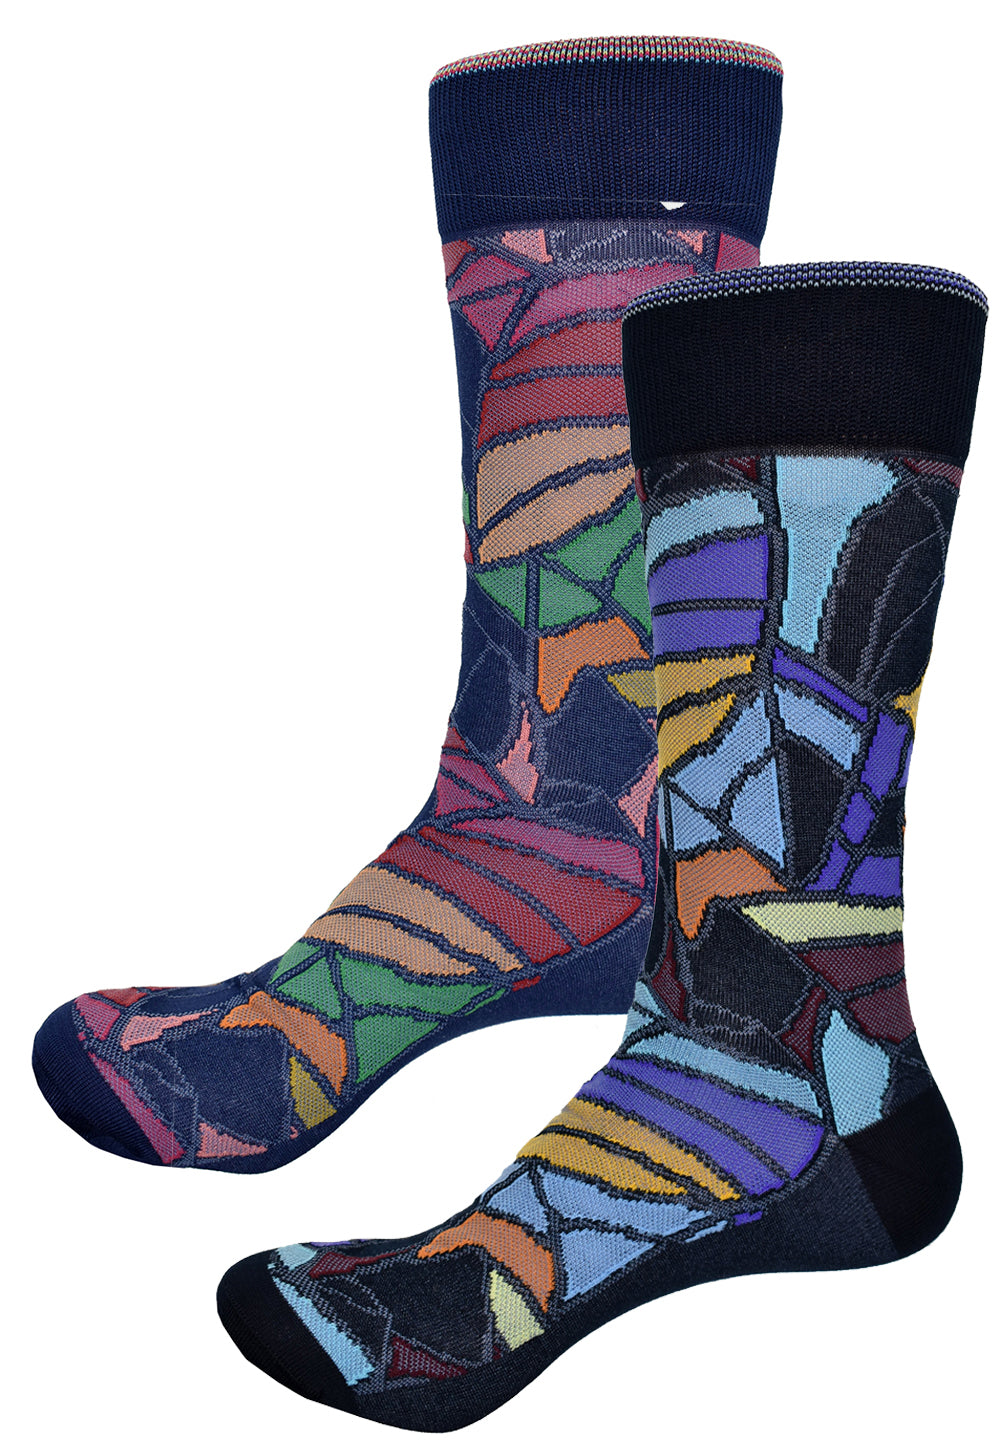 Set your image apart and make a statement with these fantastic socks.  Fine mercerized cotton with nylon blend for lightweight comfort.  Stained Glass Mosaic Socks - Red or Navy  Truly unique fashion in rich colors. Soft mercerized cotton with nylon blend for comfort. One size, fits 9-12.